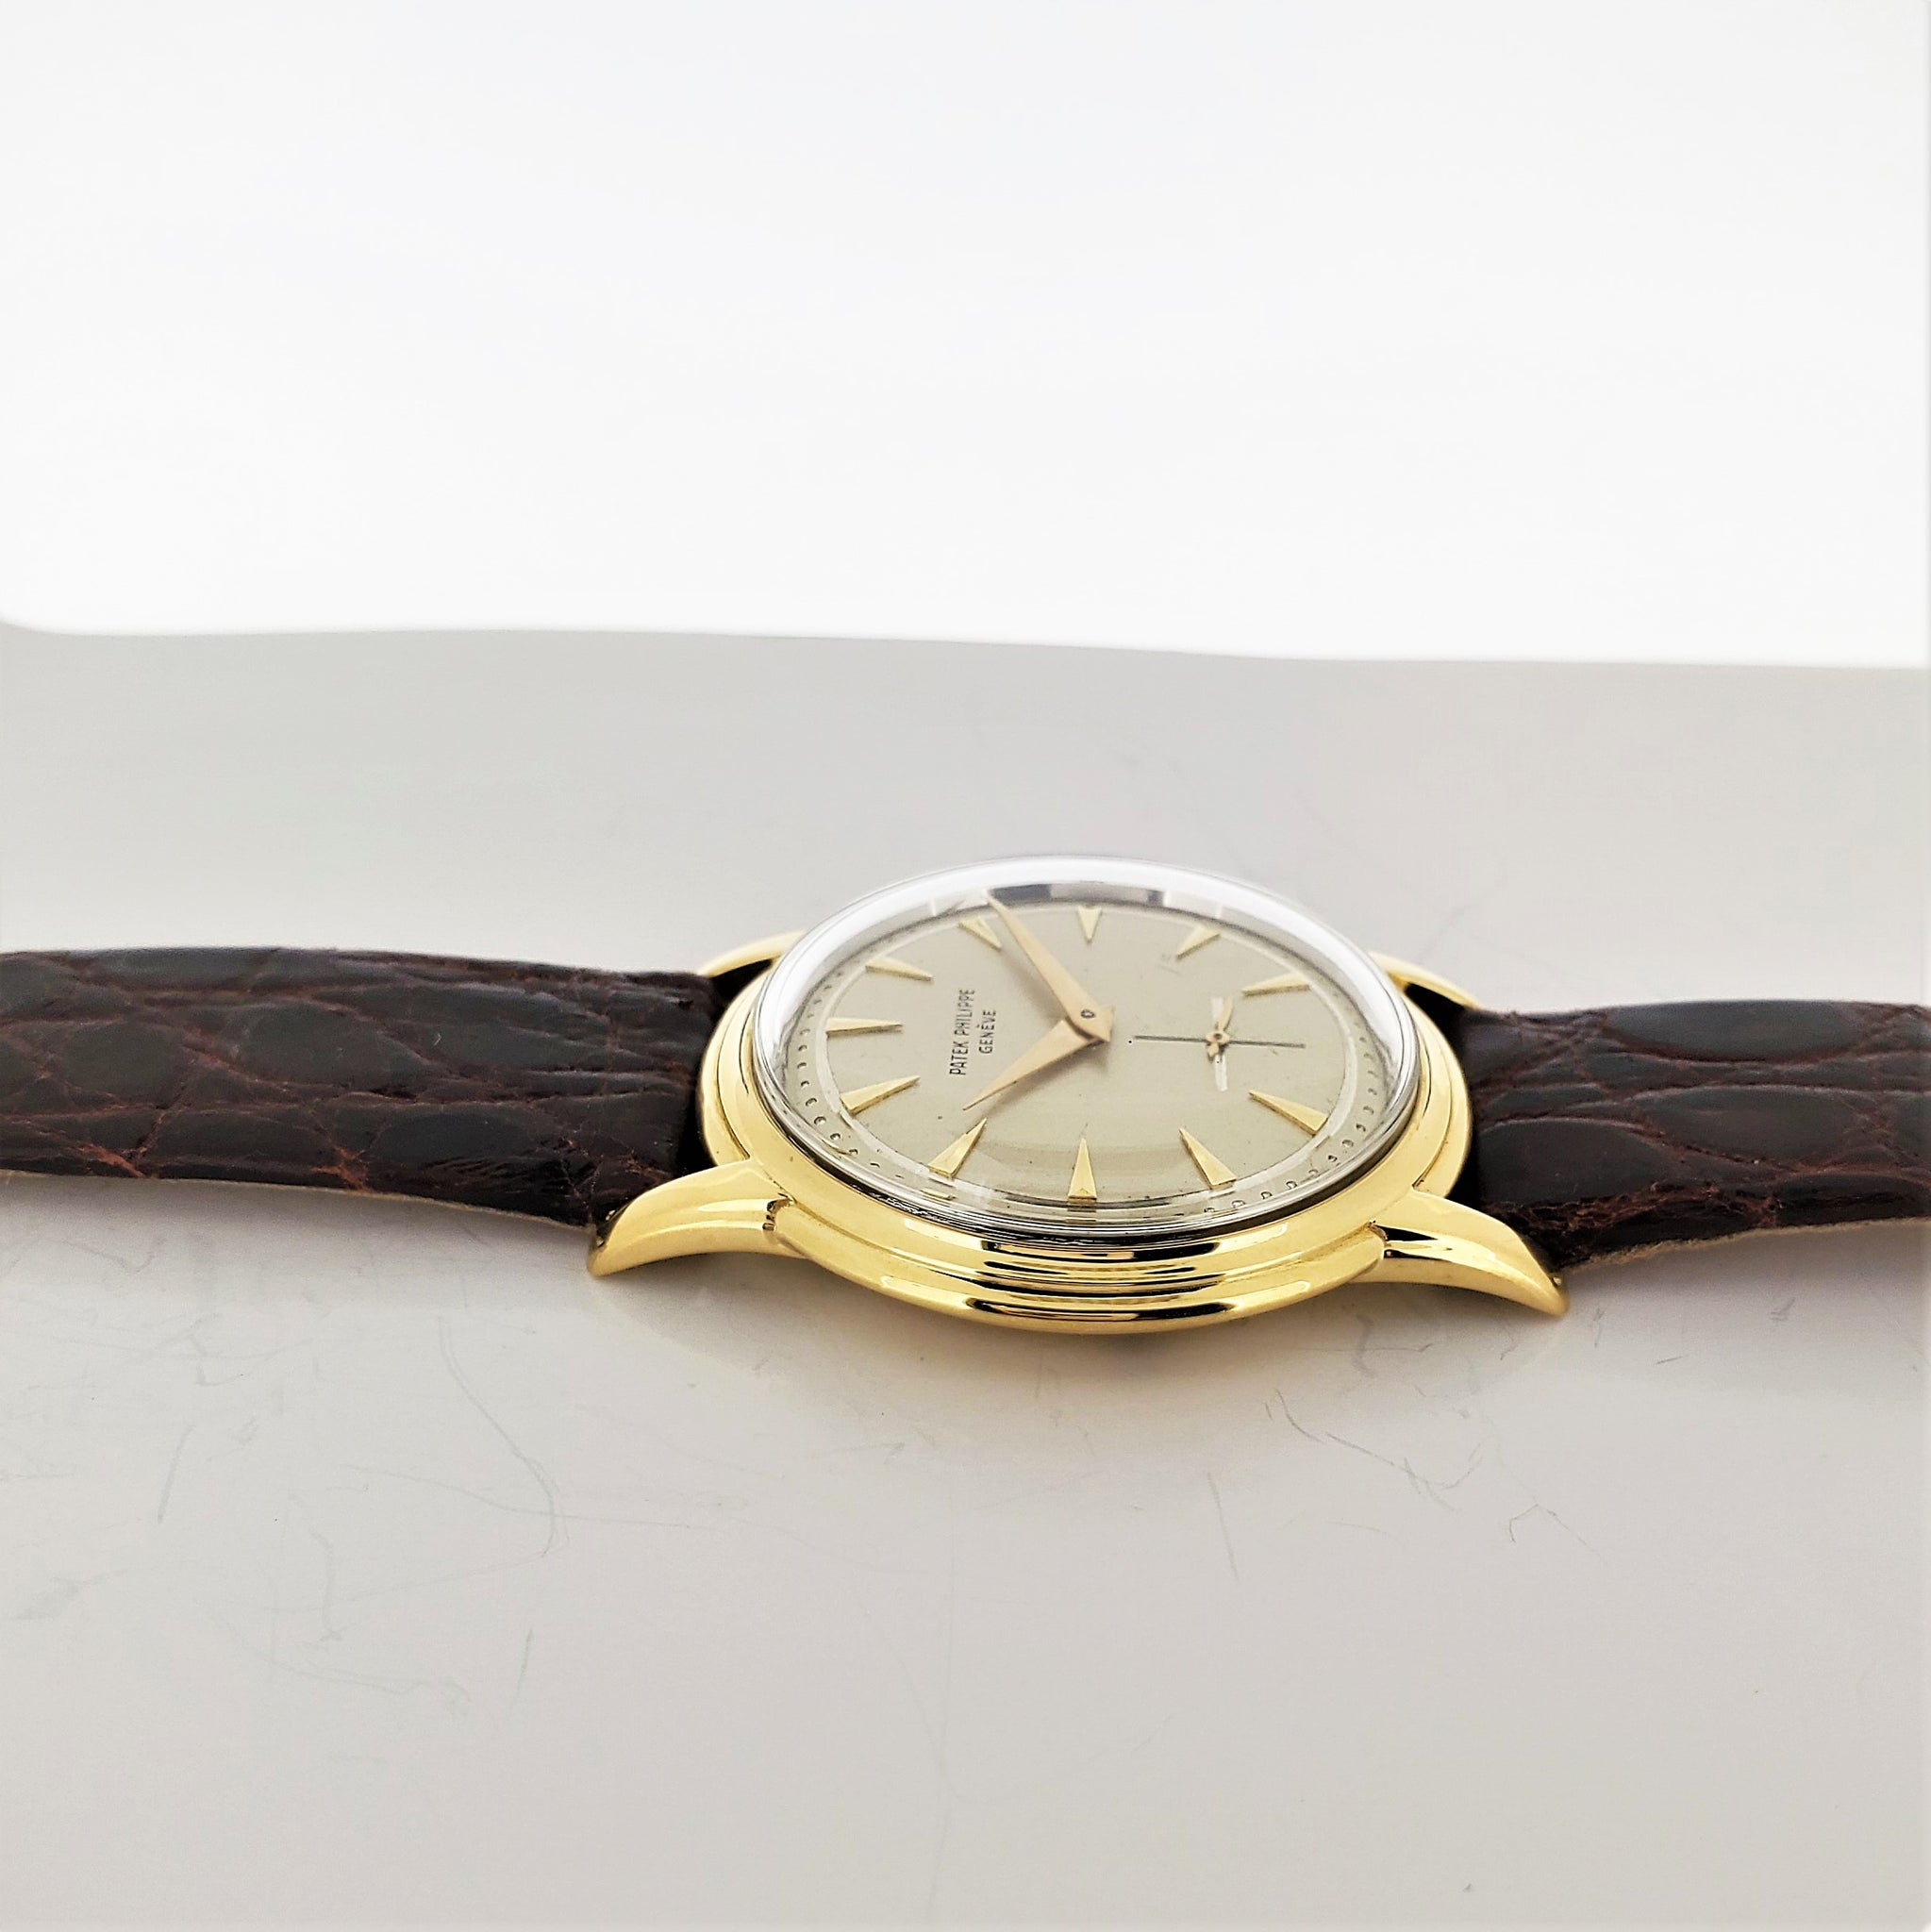 Patek Philippe 2525J Screw Down Back Calatrava Watch circa 1954